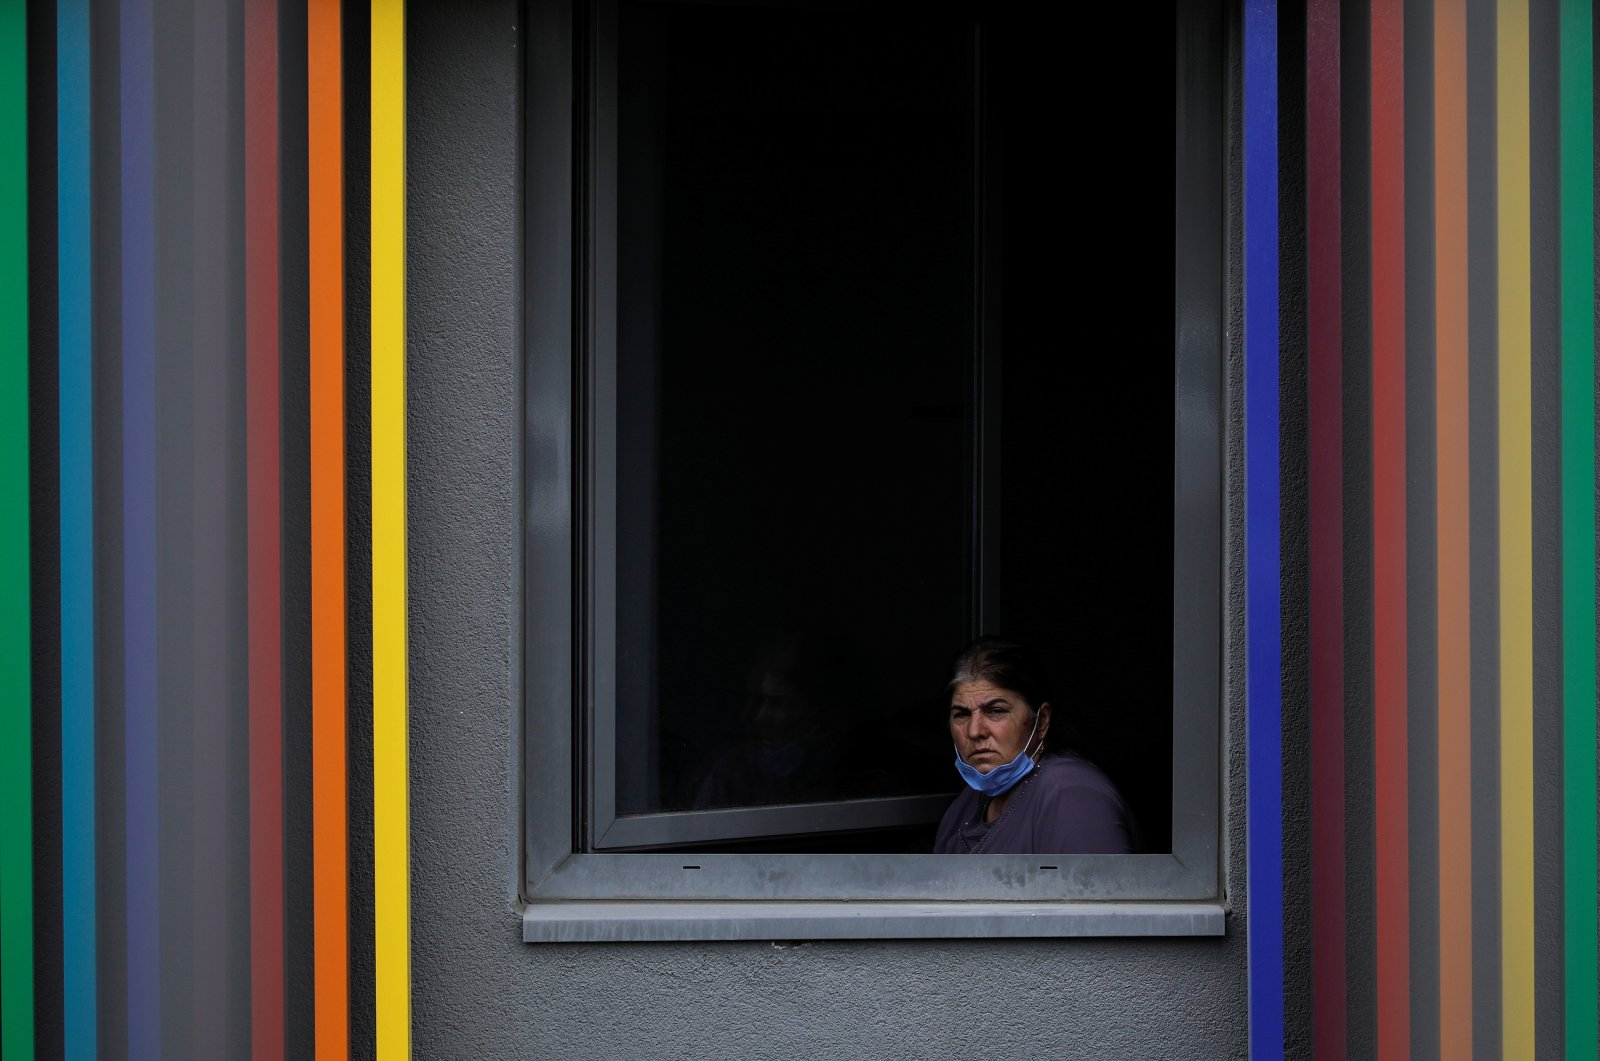 A woman looks out from a dormitory where she is placed under quarantine after returning from abroad, in Istanbul, Turkey, March 18, 2020. (REUTERS Photo)